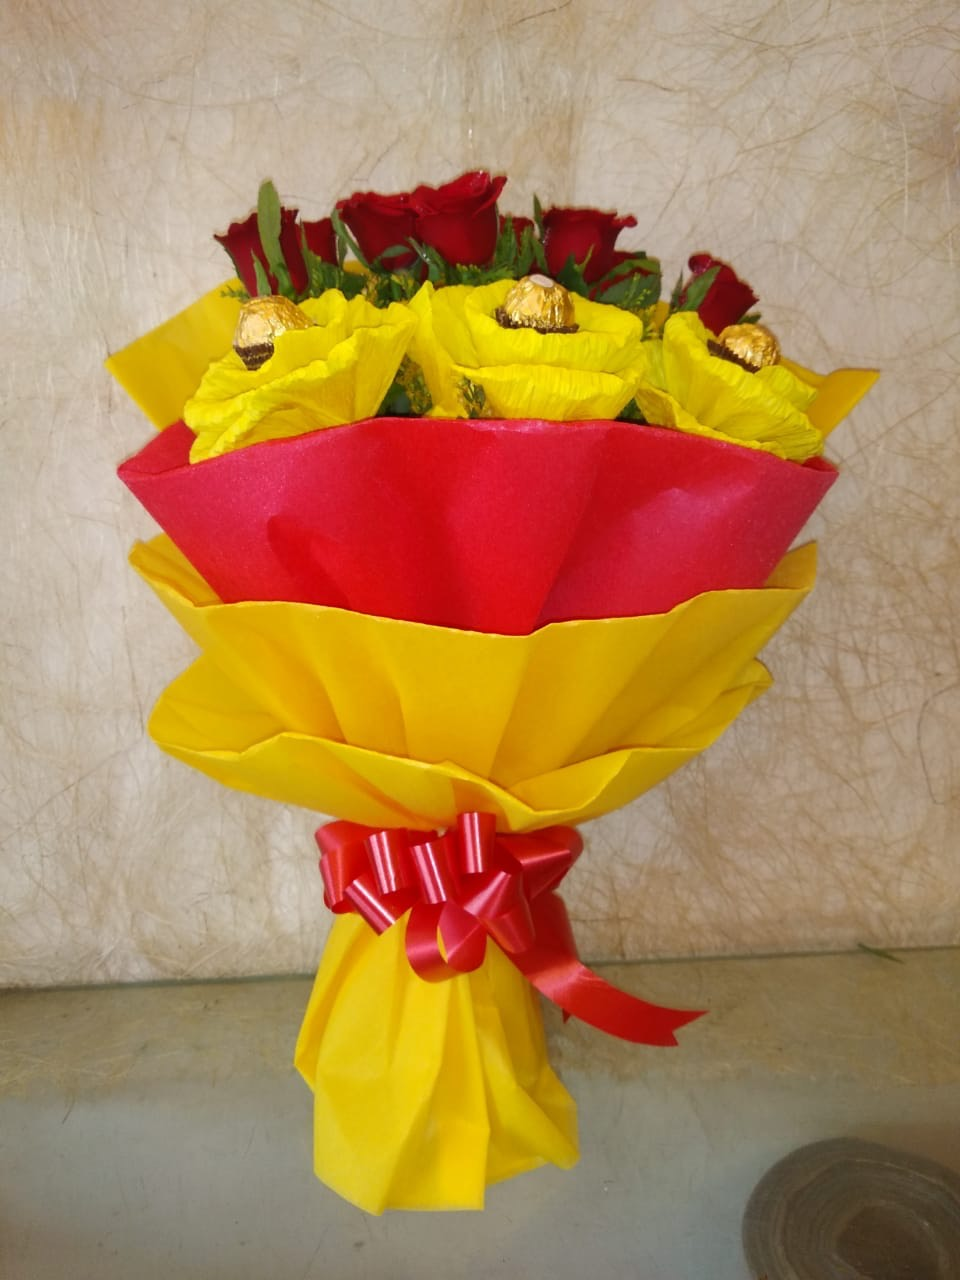 Flowers Delivery in South City 2 GurgaonRed Roses Ferrero Rocher Bunch